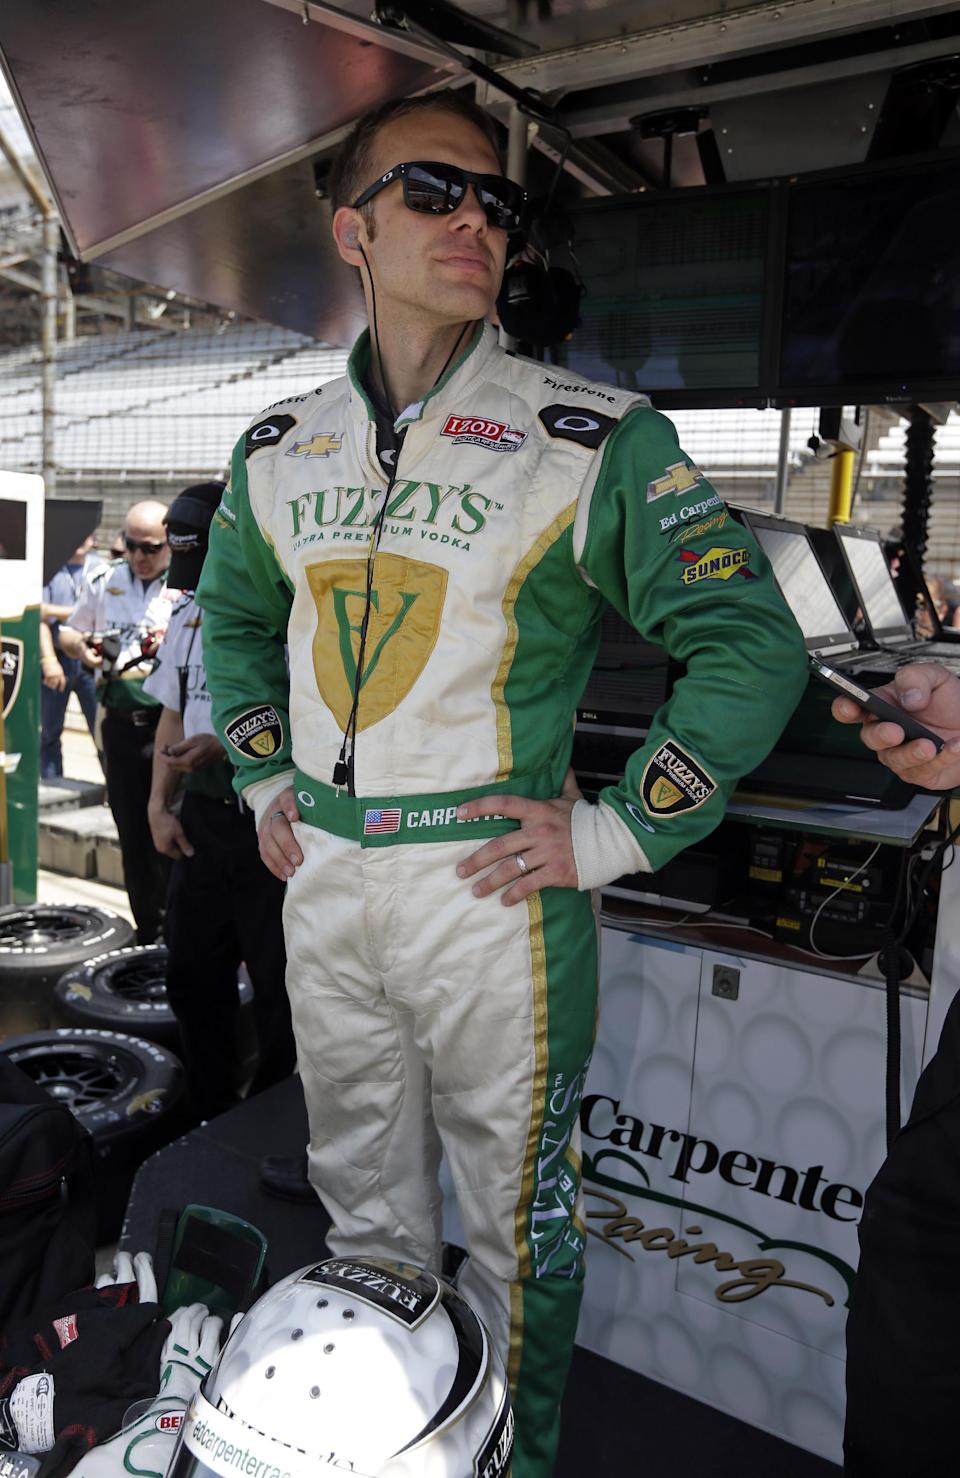 Ed Carpenter prepares to practice on the second day of qualifications for the Indianapolis 500 auto race at the Indianapolis Motor Speedway in Indianapolis, Sunday, May 19, 2013. Carpenter will start the race from the pole. (AP Photo/Darron Cummings)